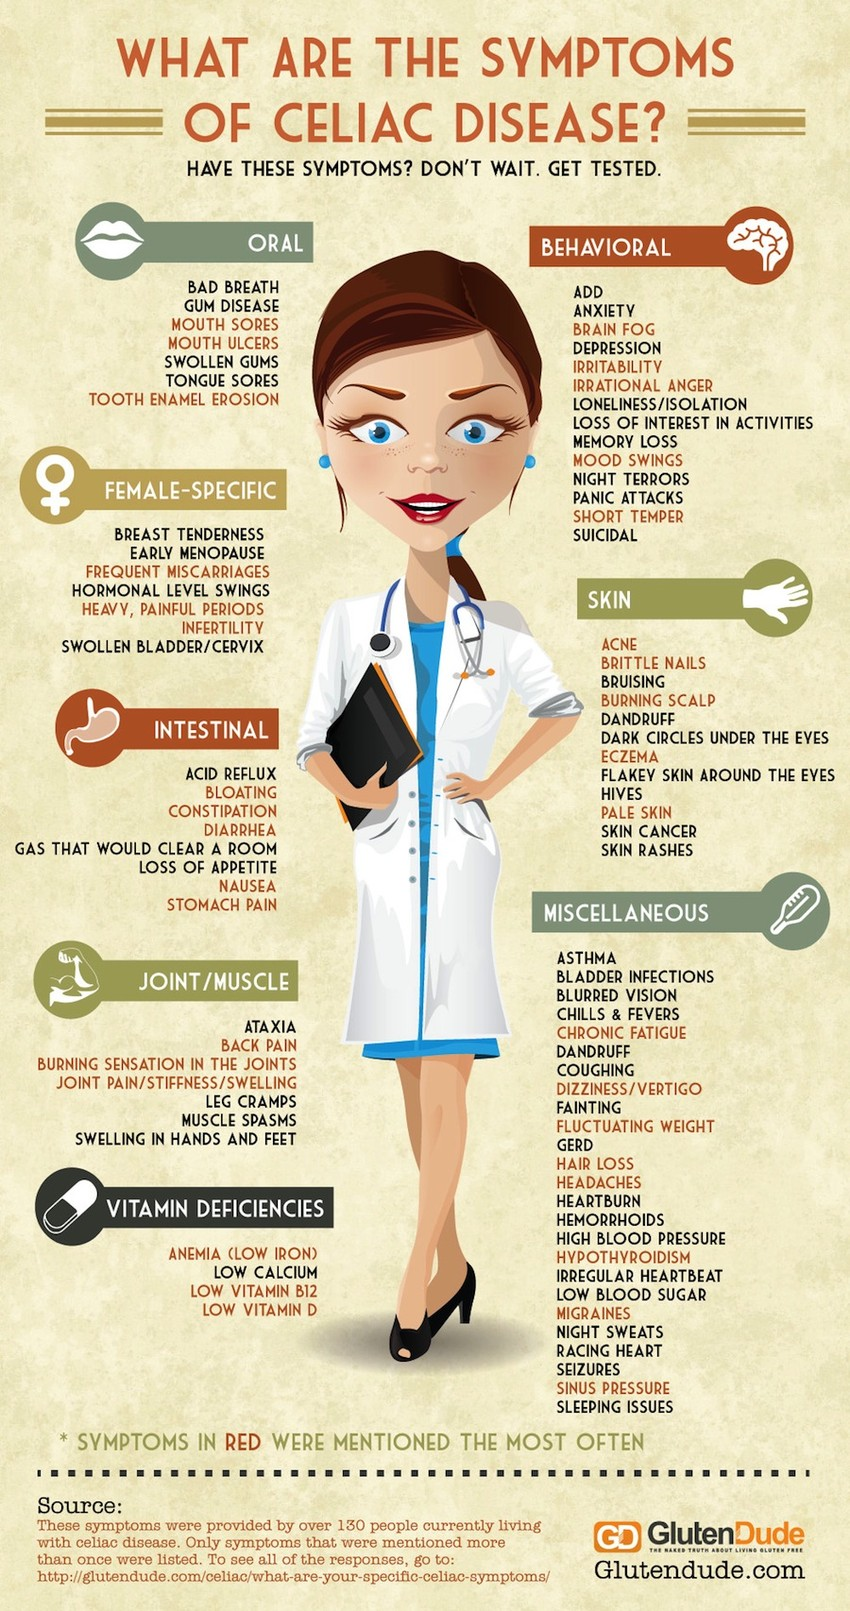 84 Symptoms Of Celiac Disease Infographic